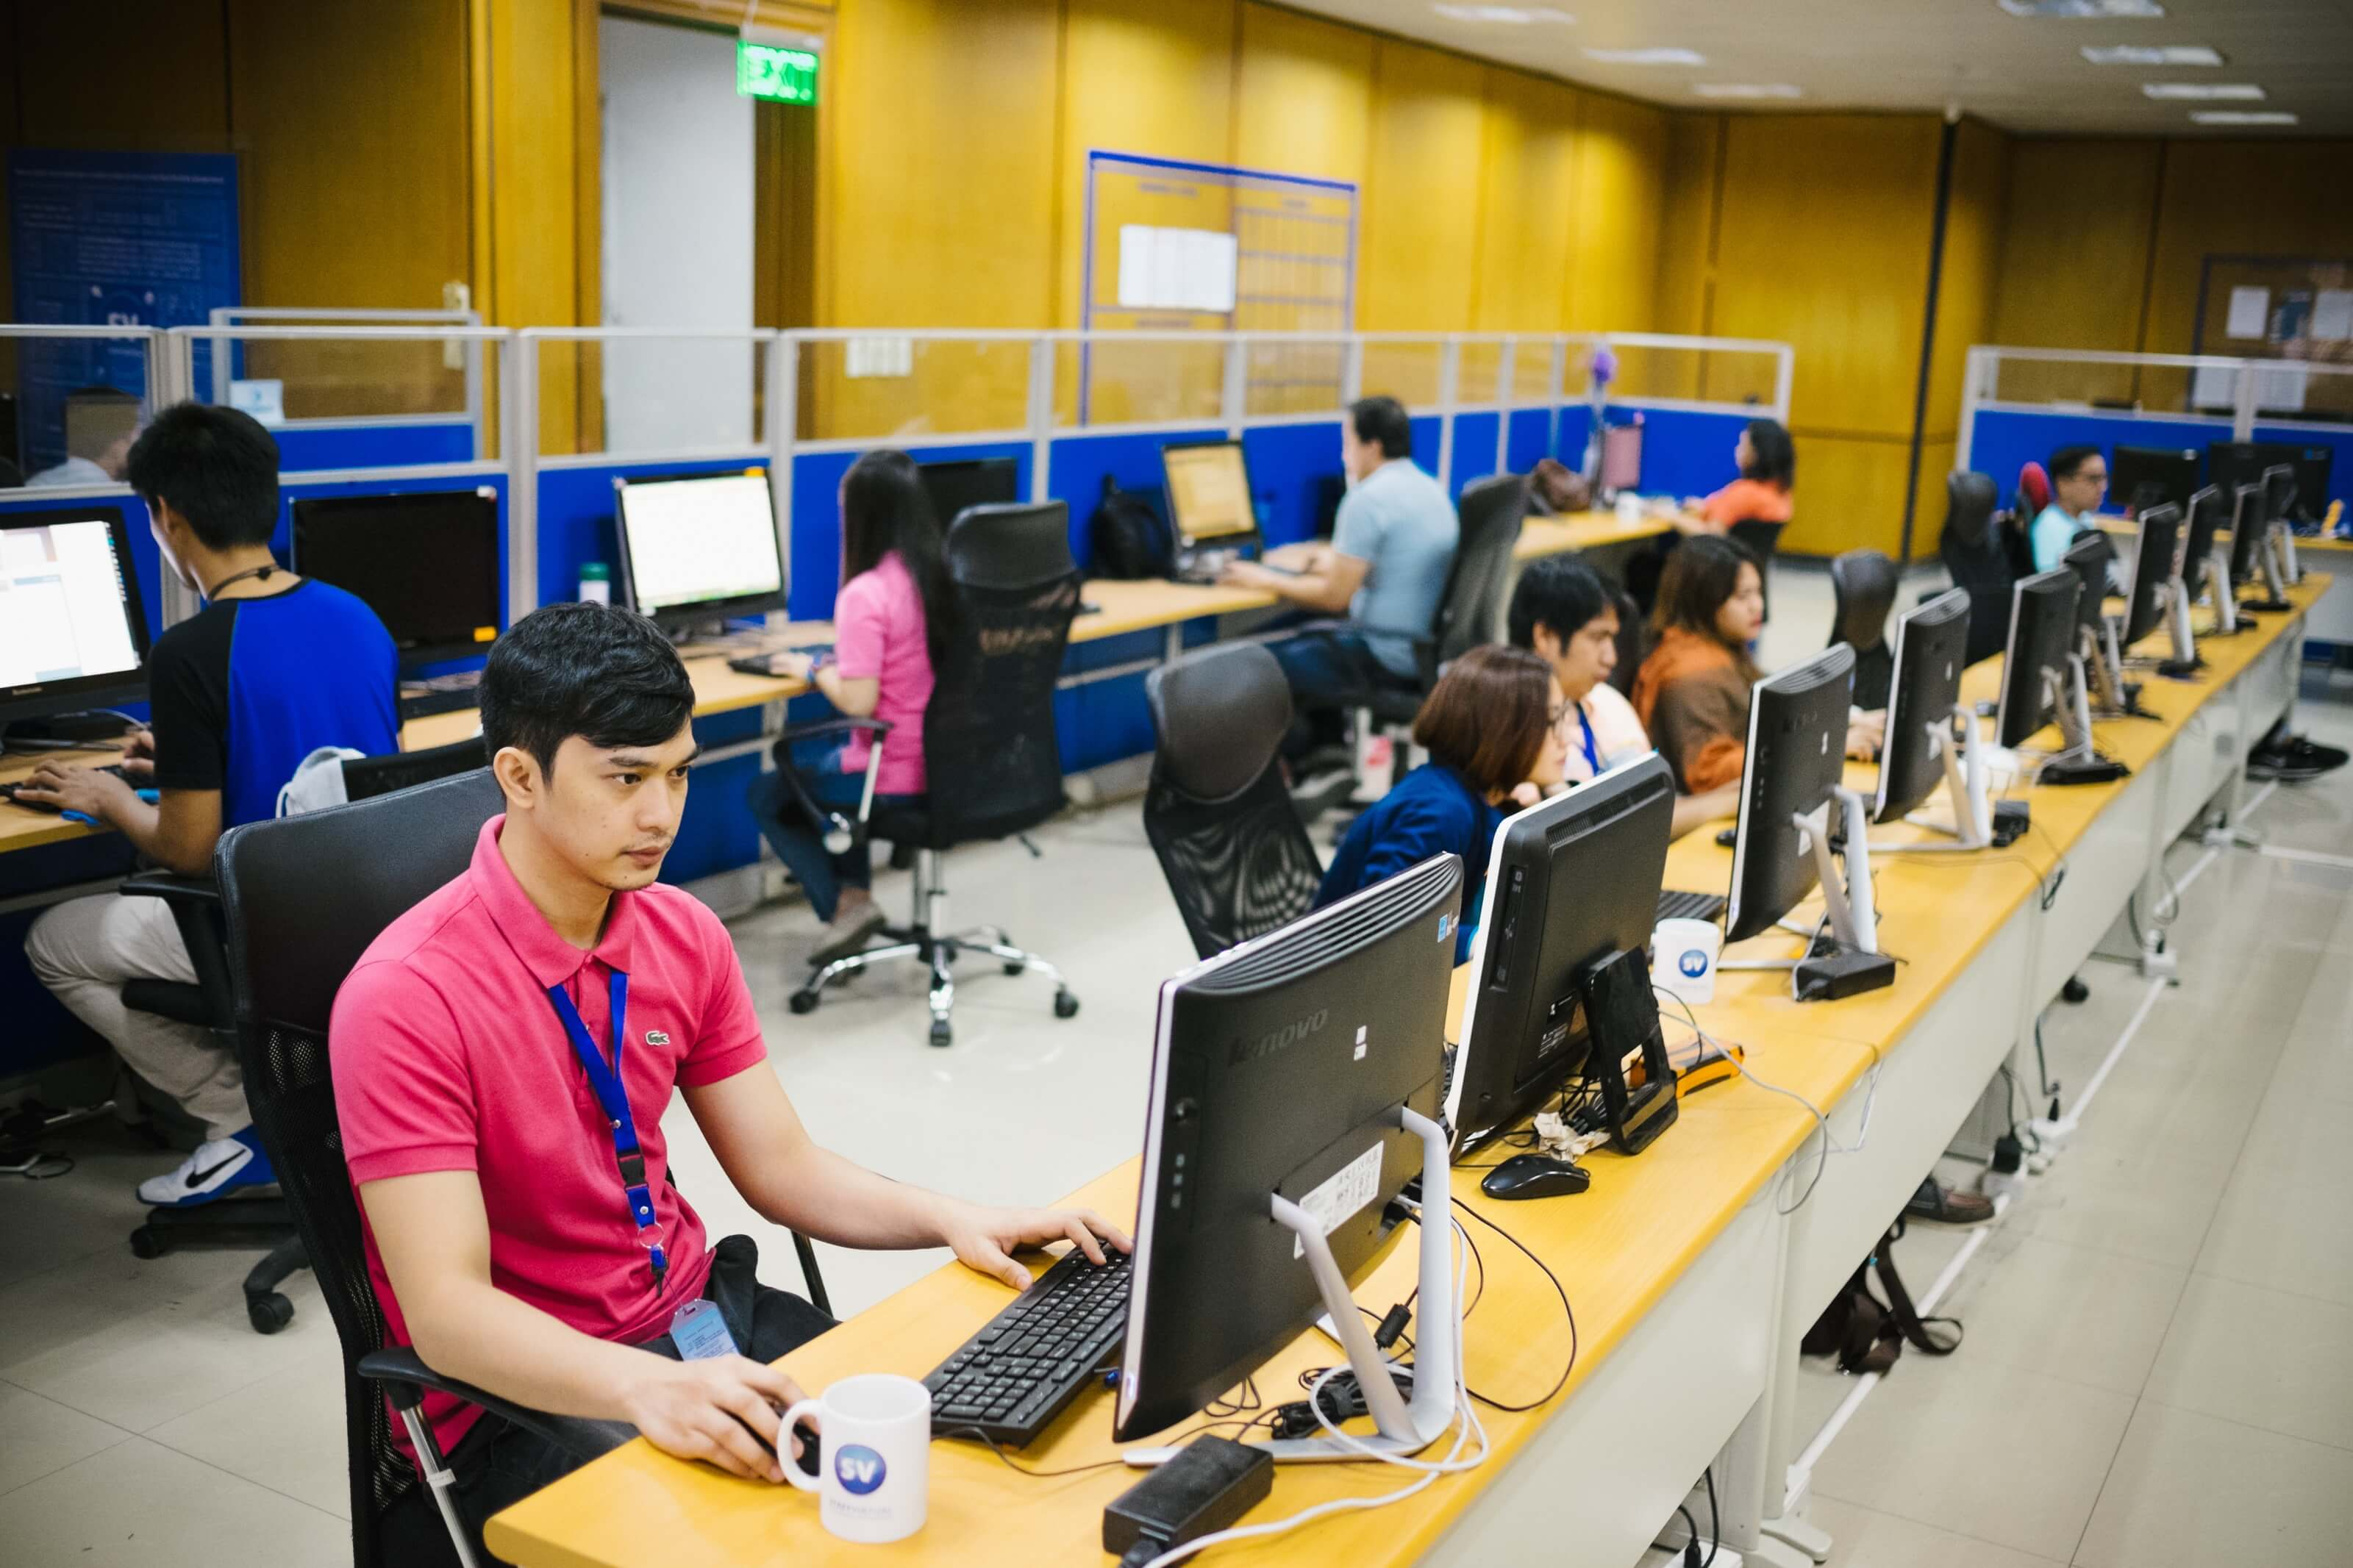 List of Outsourcing Companies in the Philippines